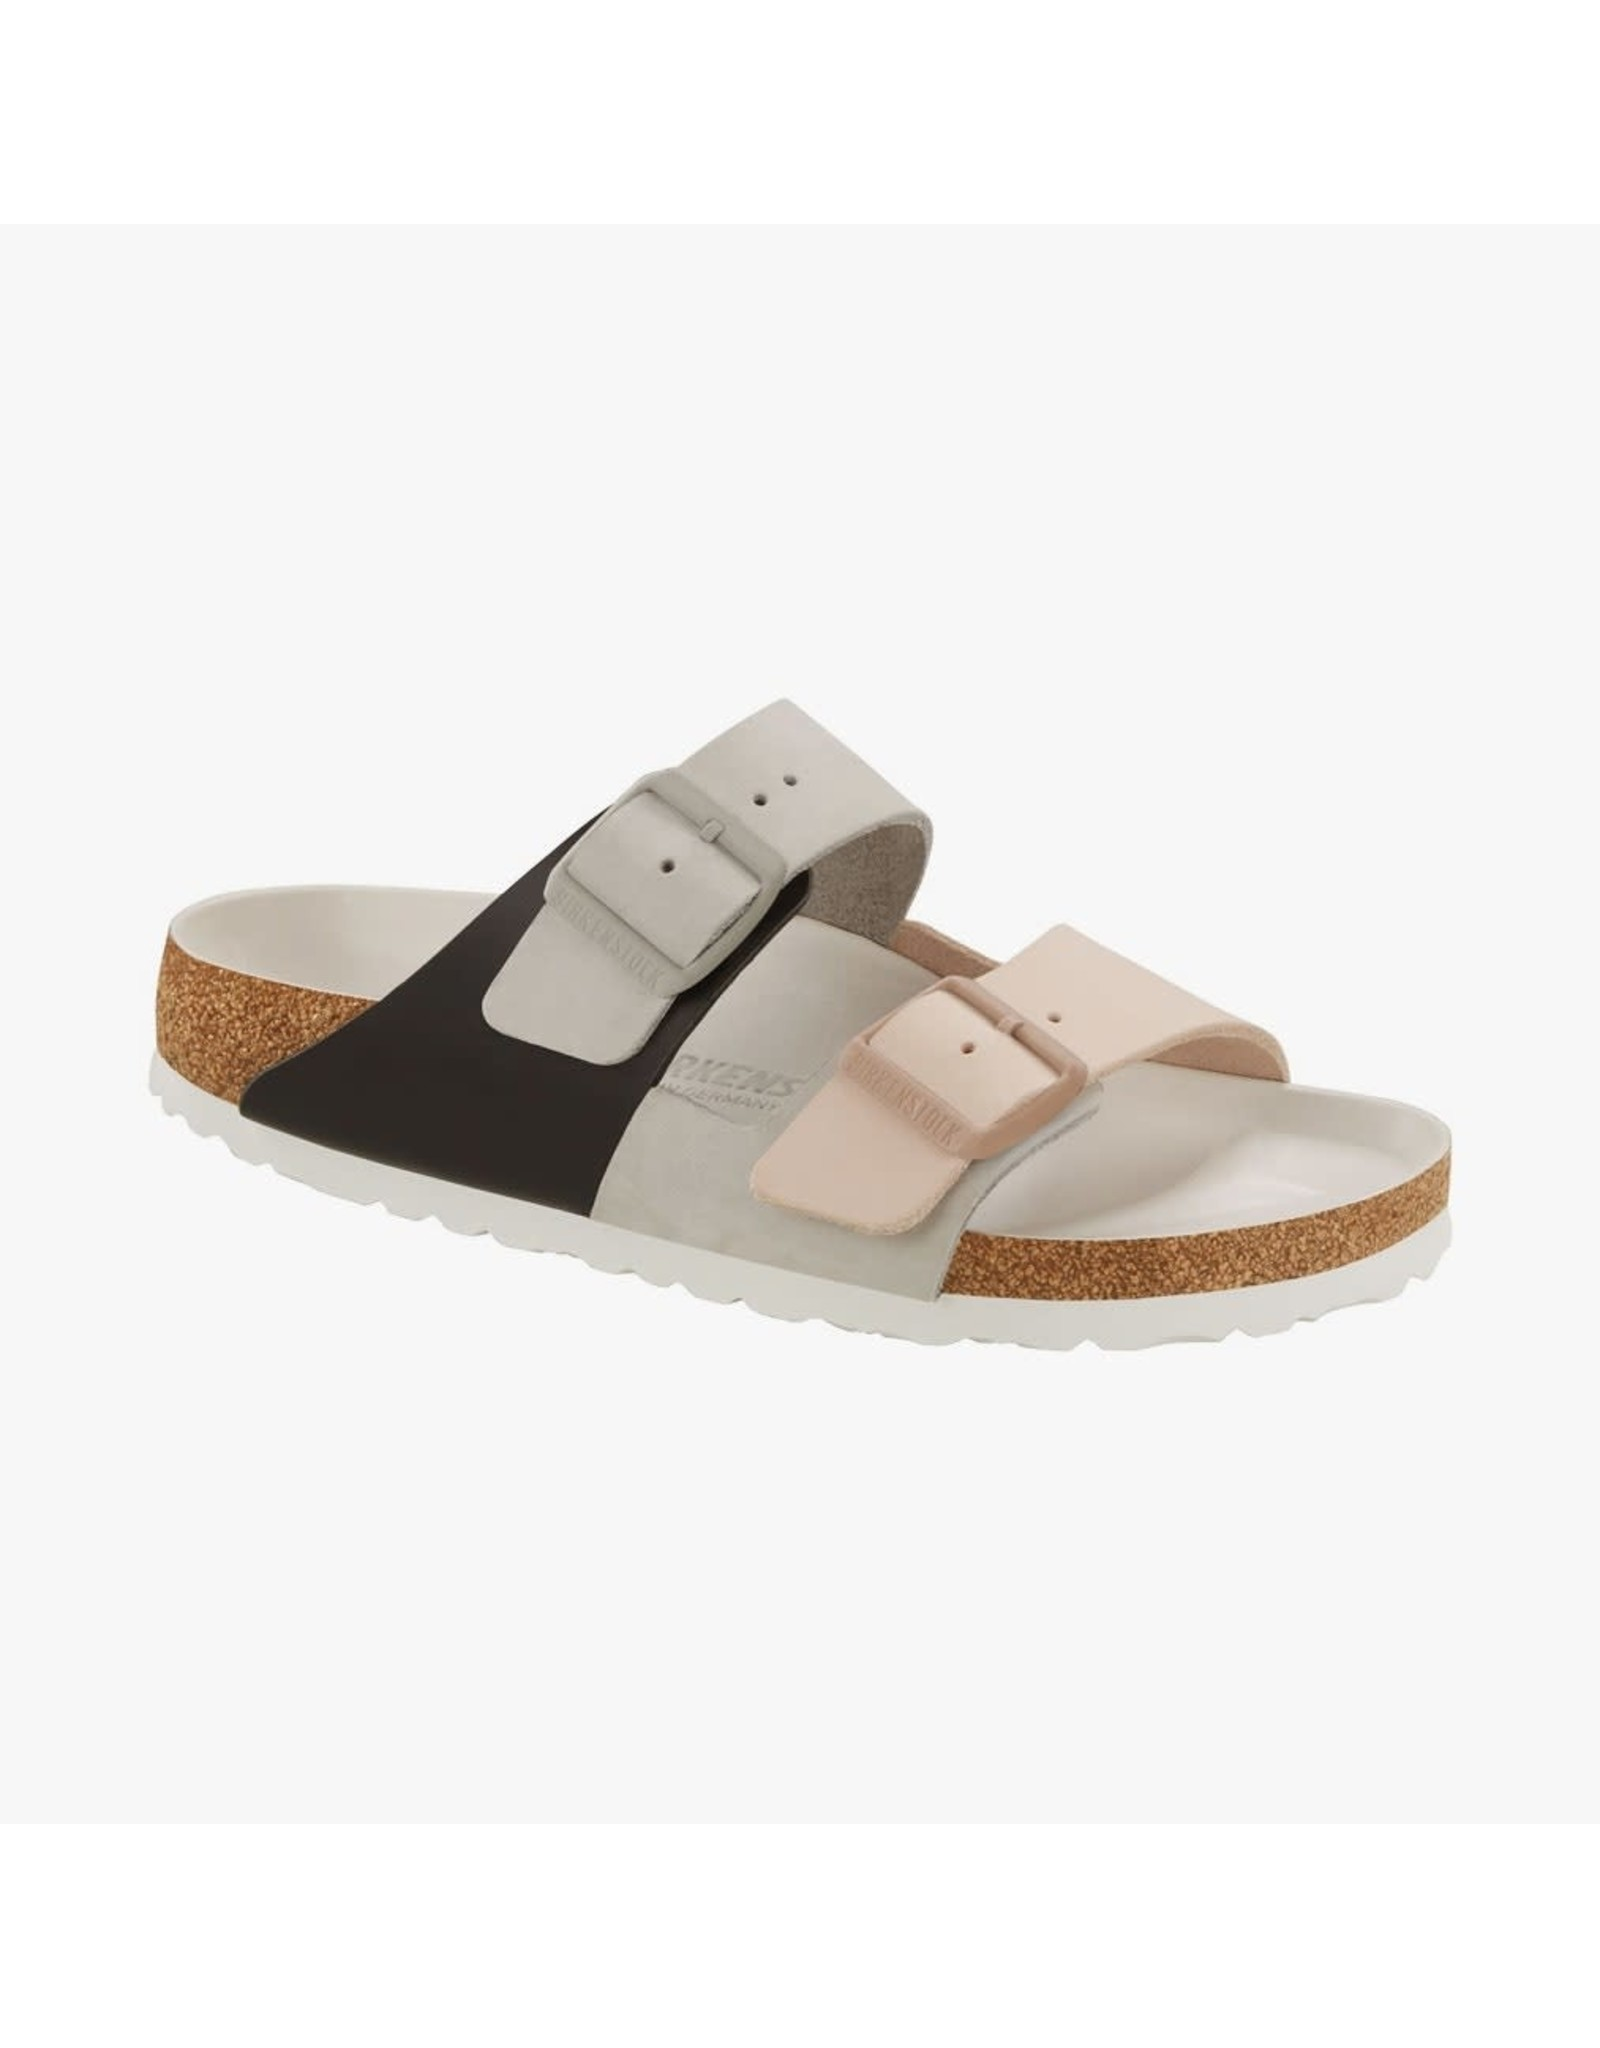 Birkenstock Arizona Split (N) 1019414